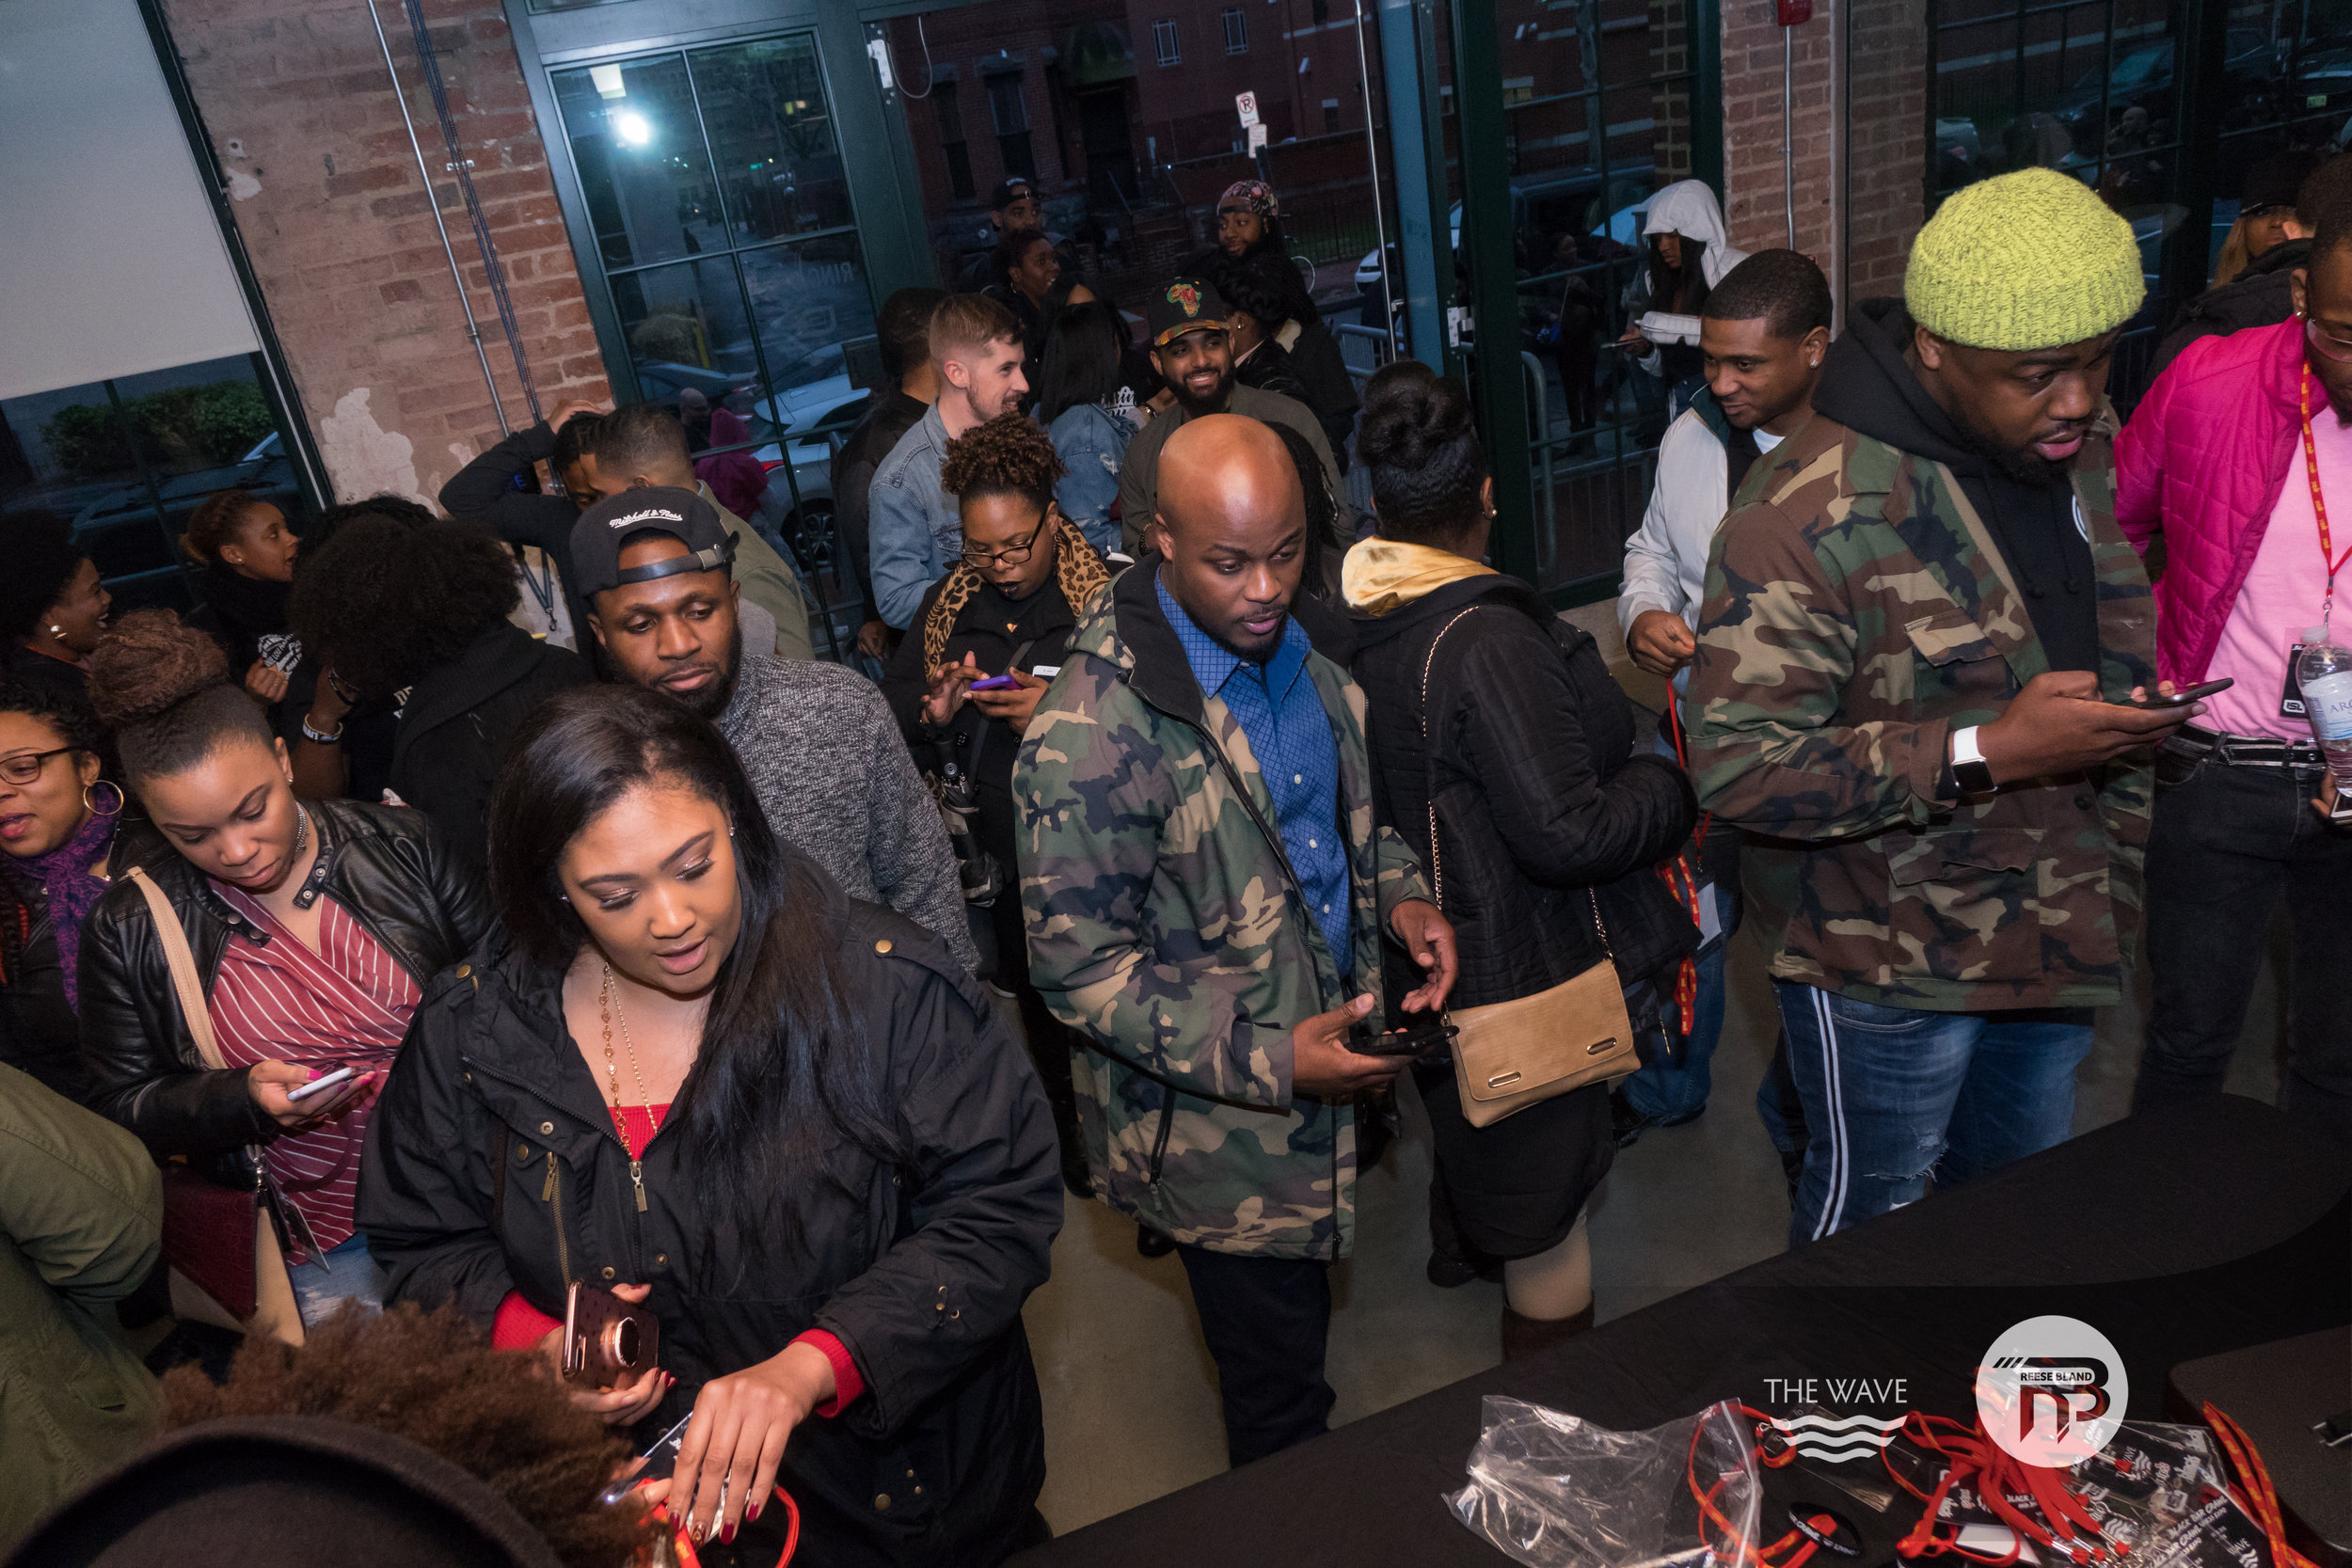 WaveDC-BlackBarCrawl-2-2018-06478.jpg